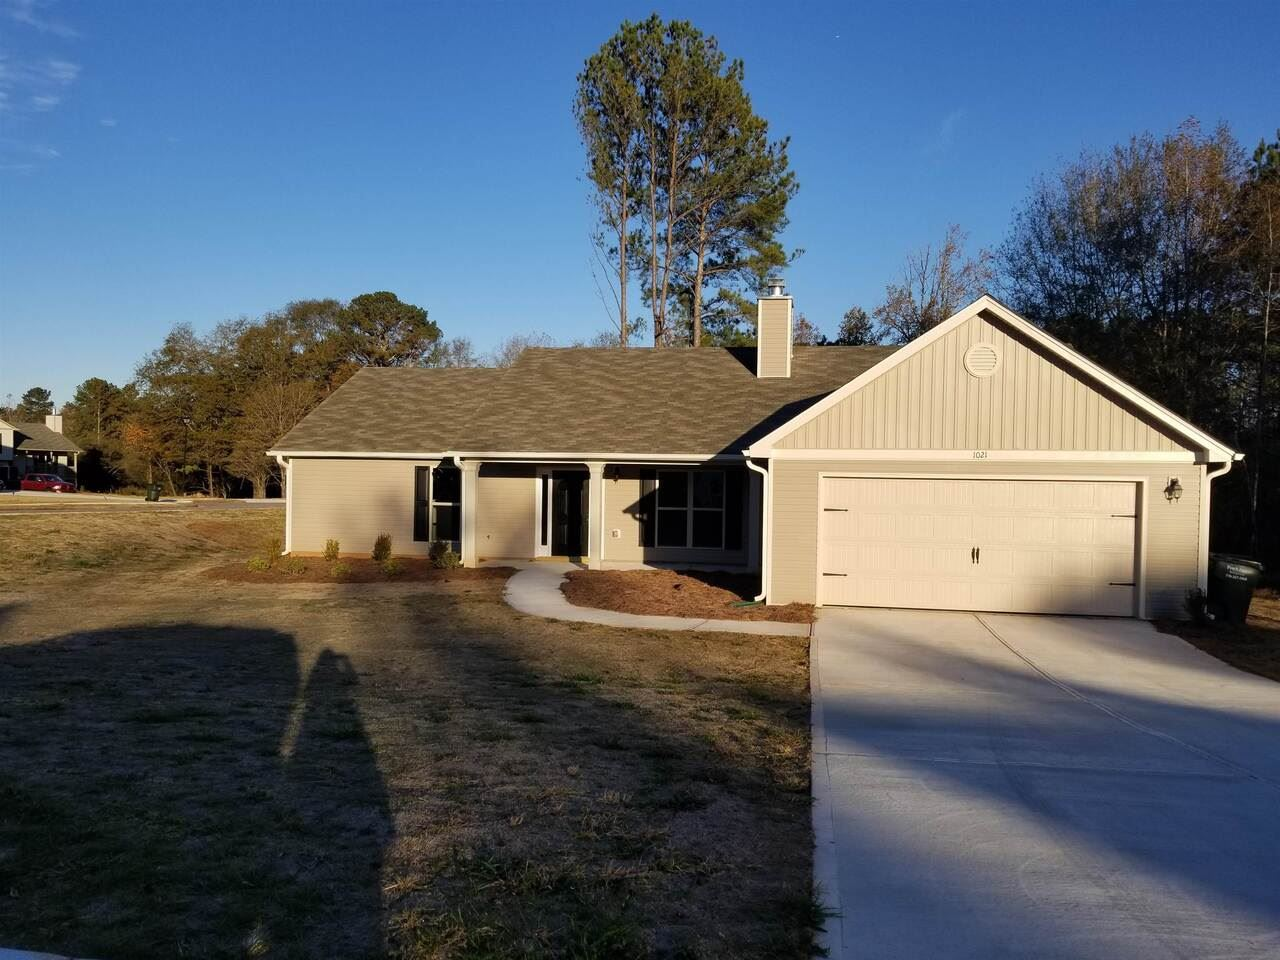 65 Armstrong Drive #105, Mansfield, GA 30055 - MLS#: 9052206